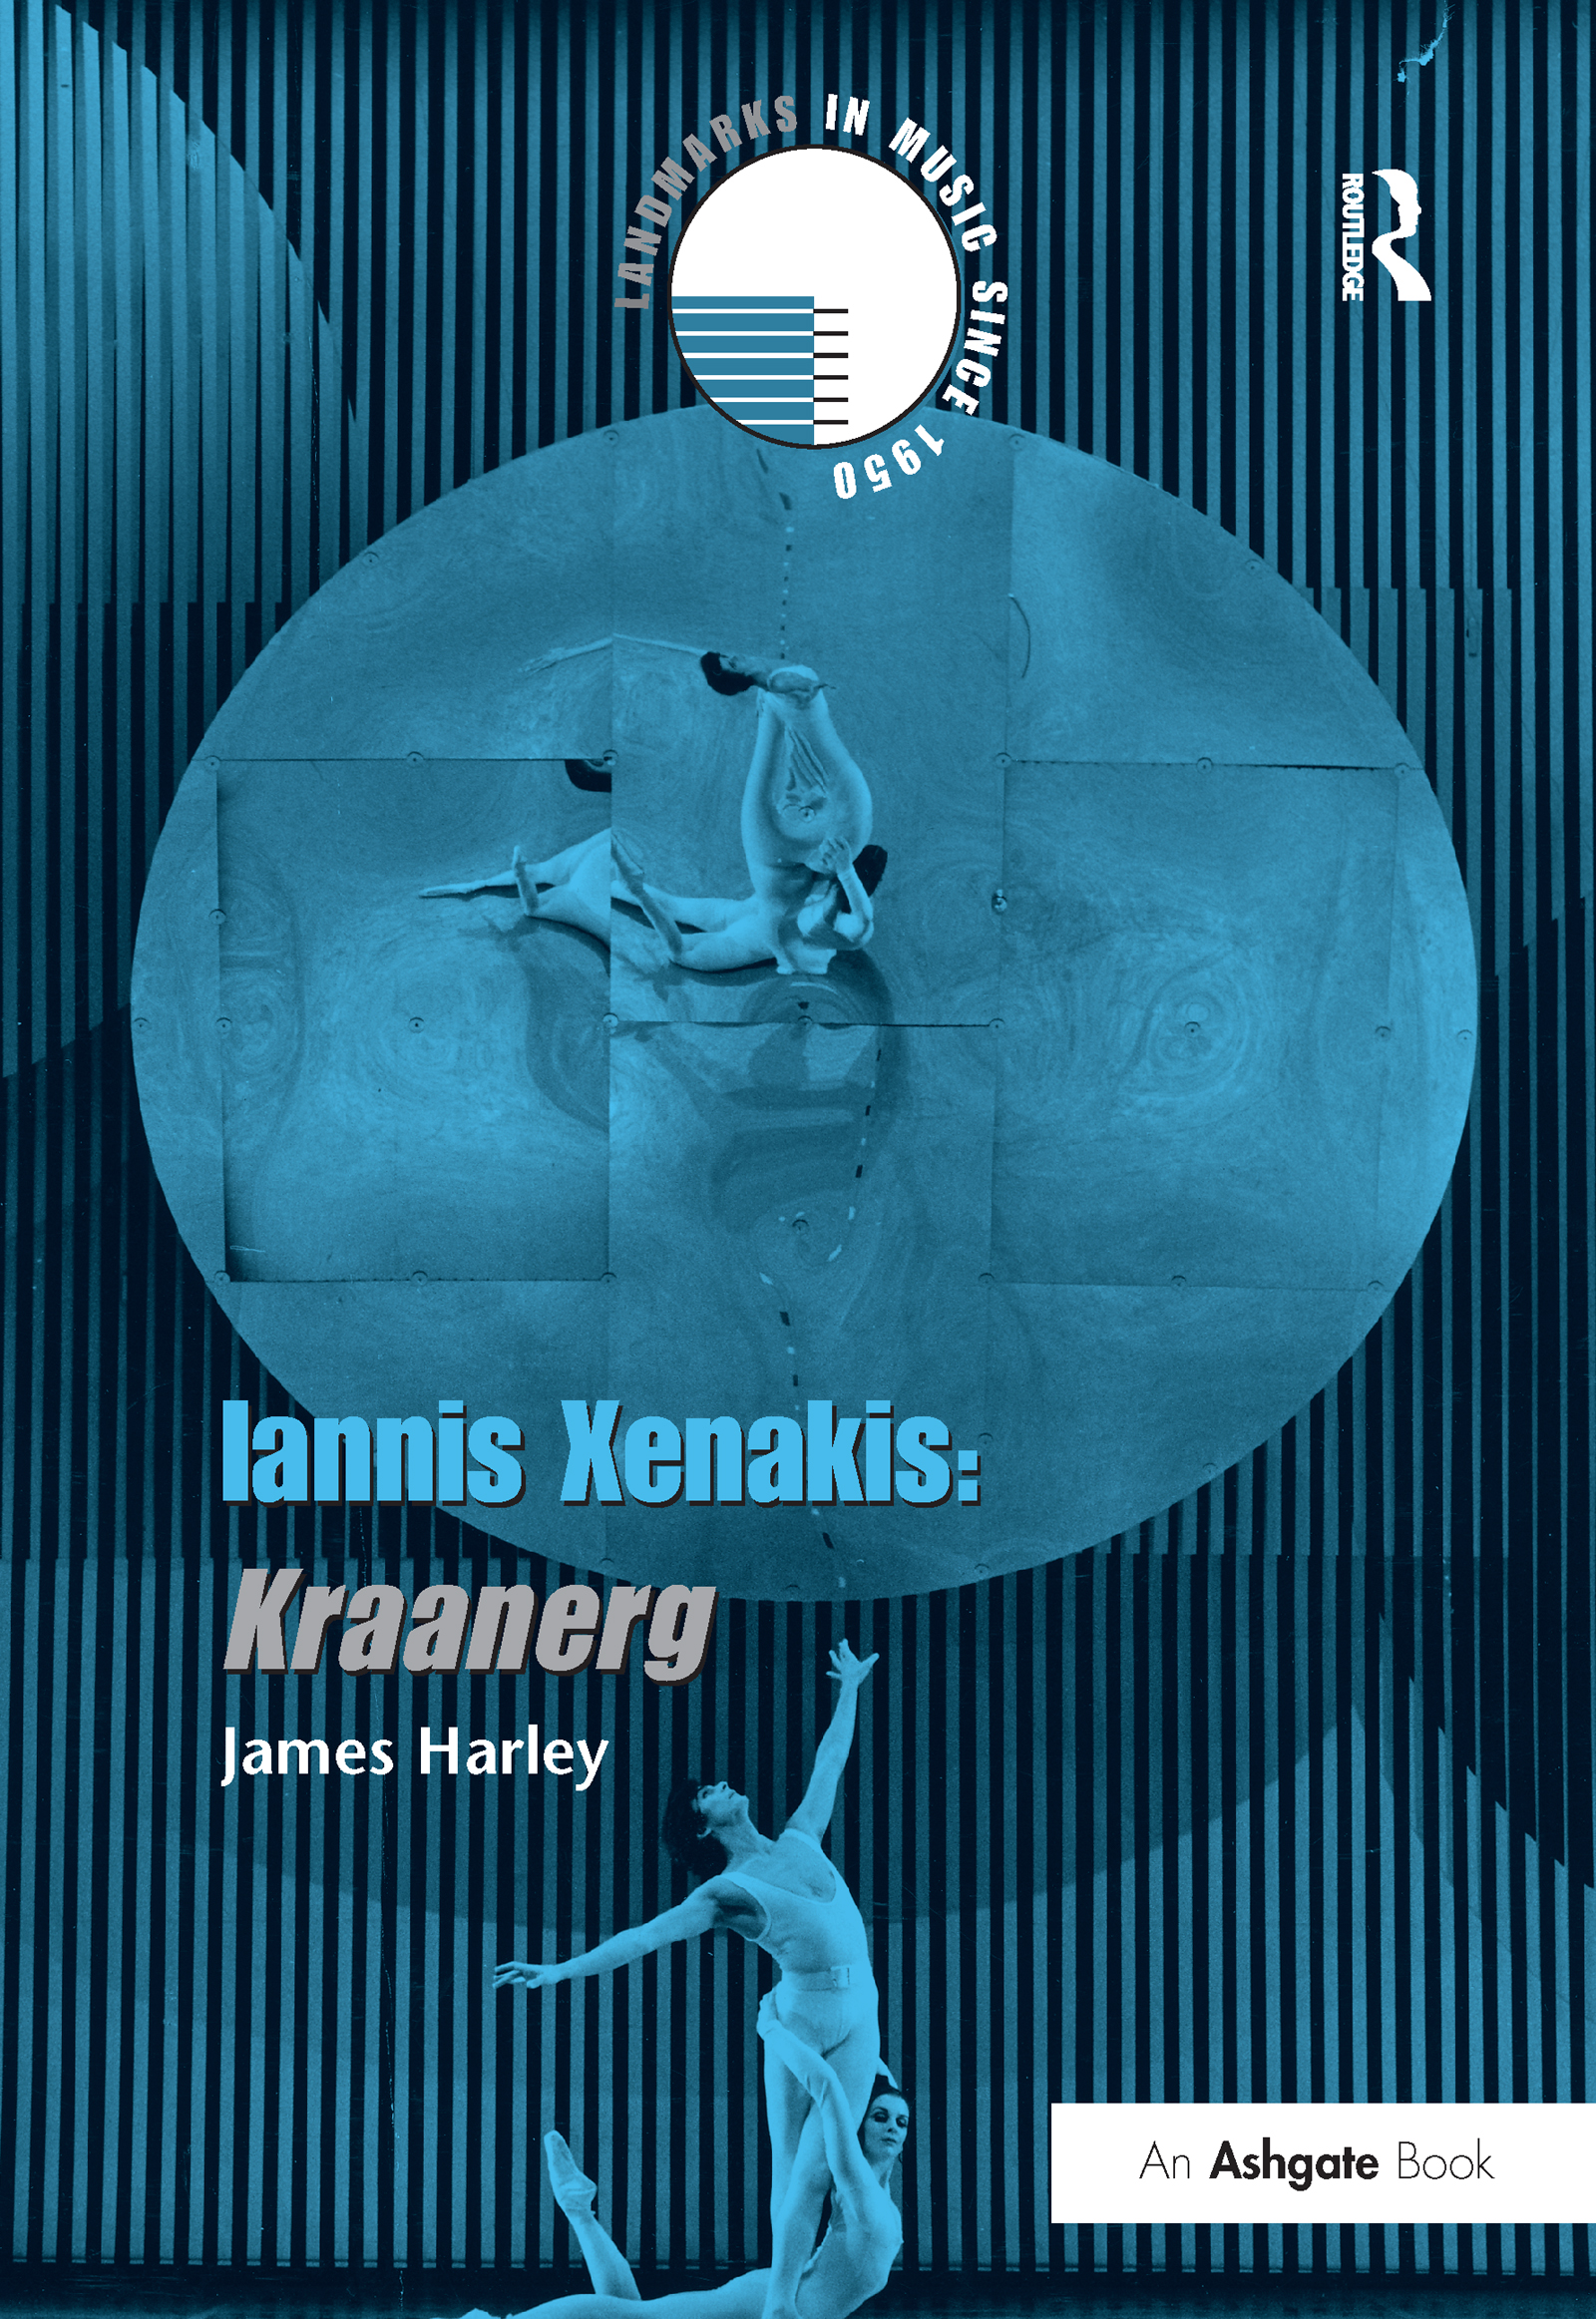 Iannis Xenakis: Kraanerg book cover